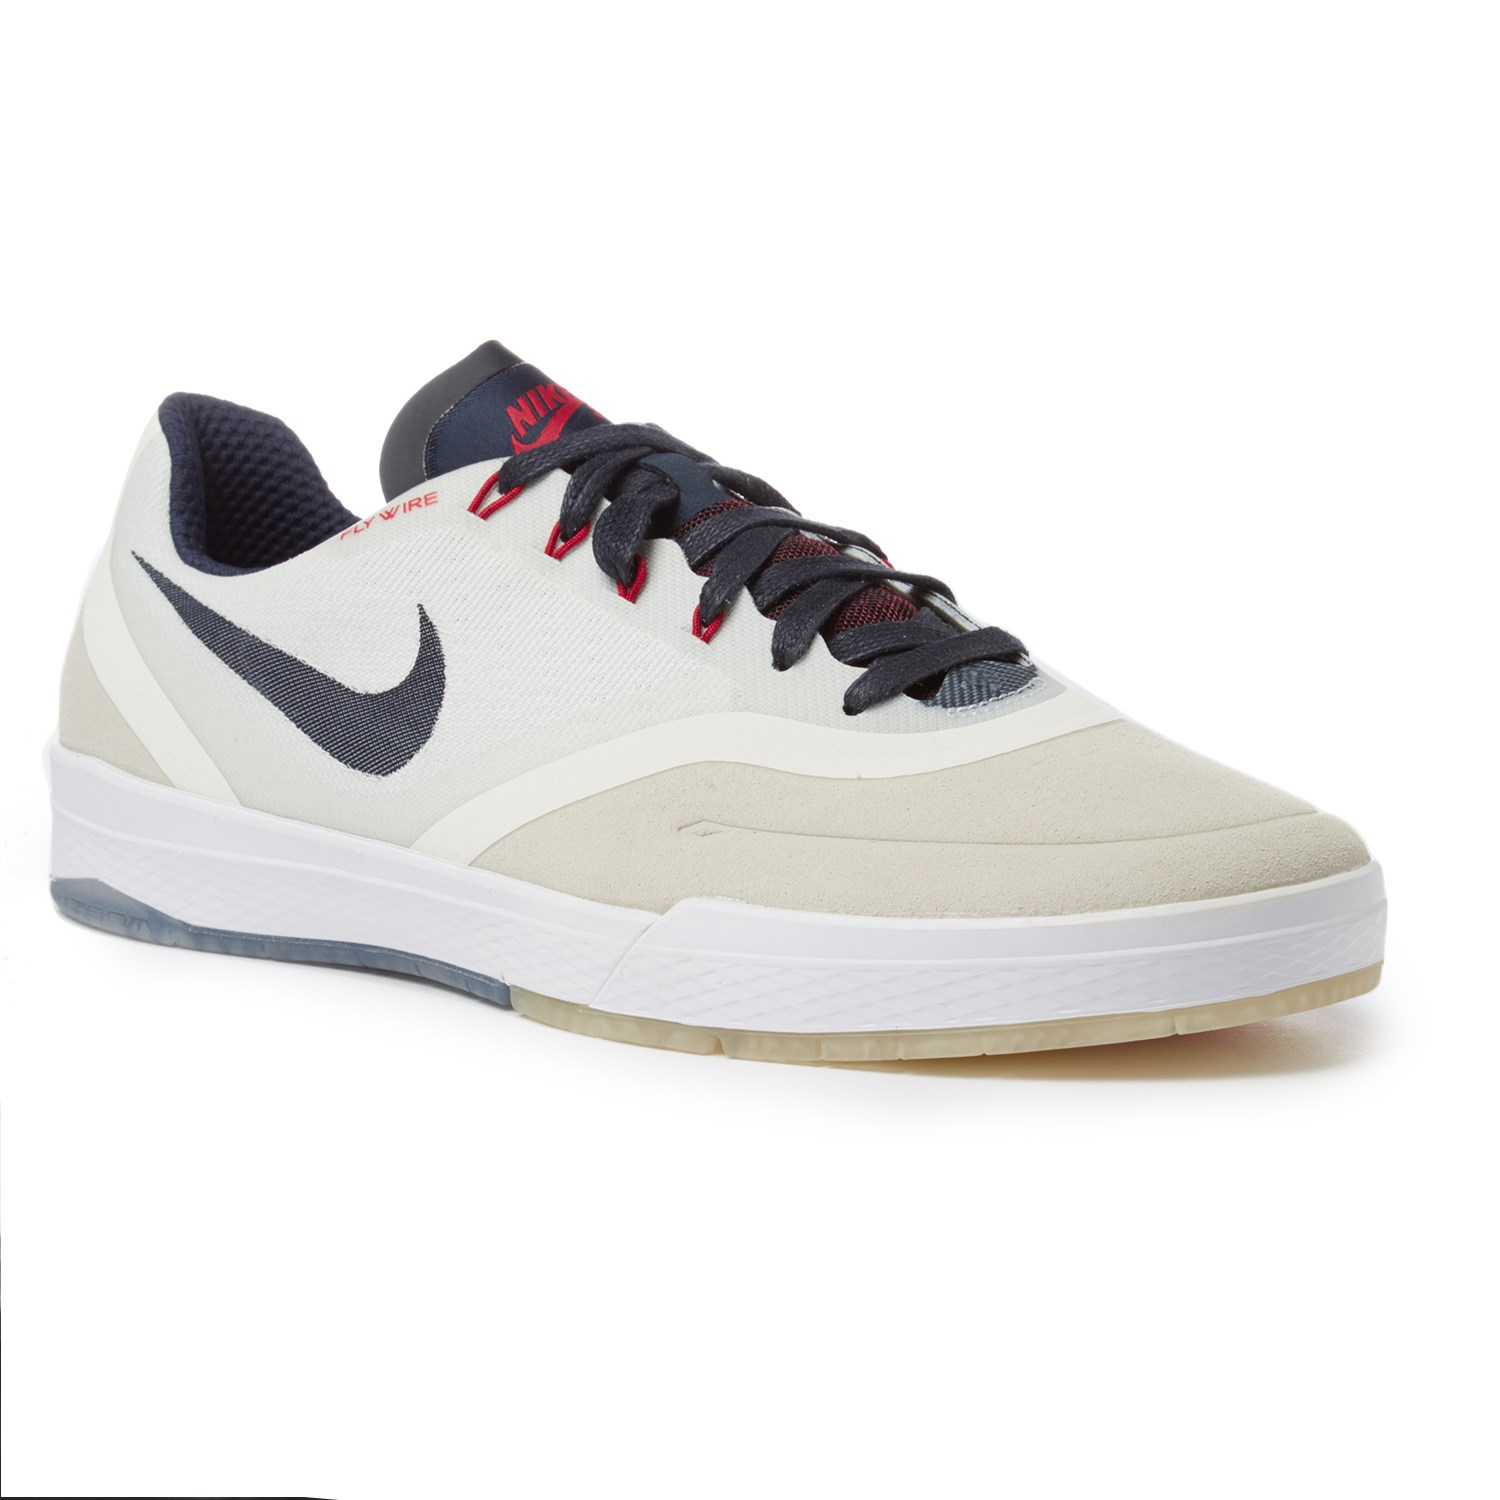 Nike SB Paul Rodriguez 9 Elite Shoes $140.00